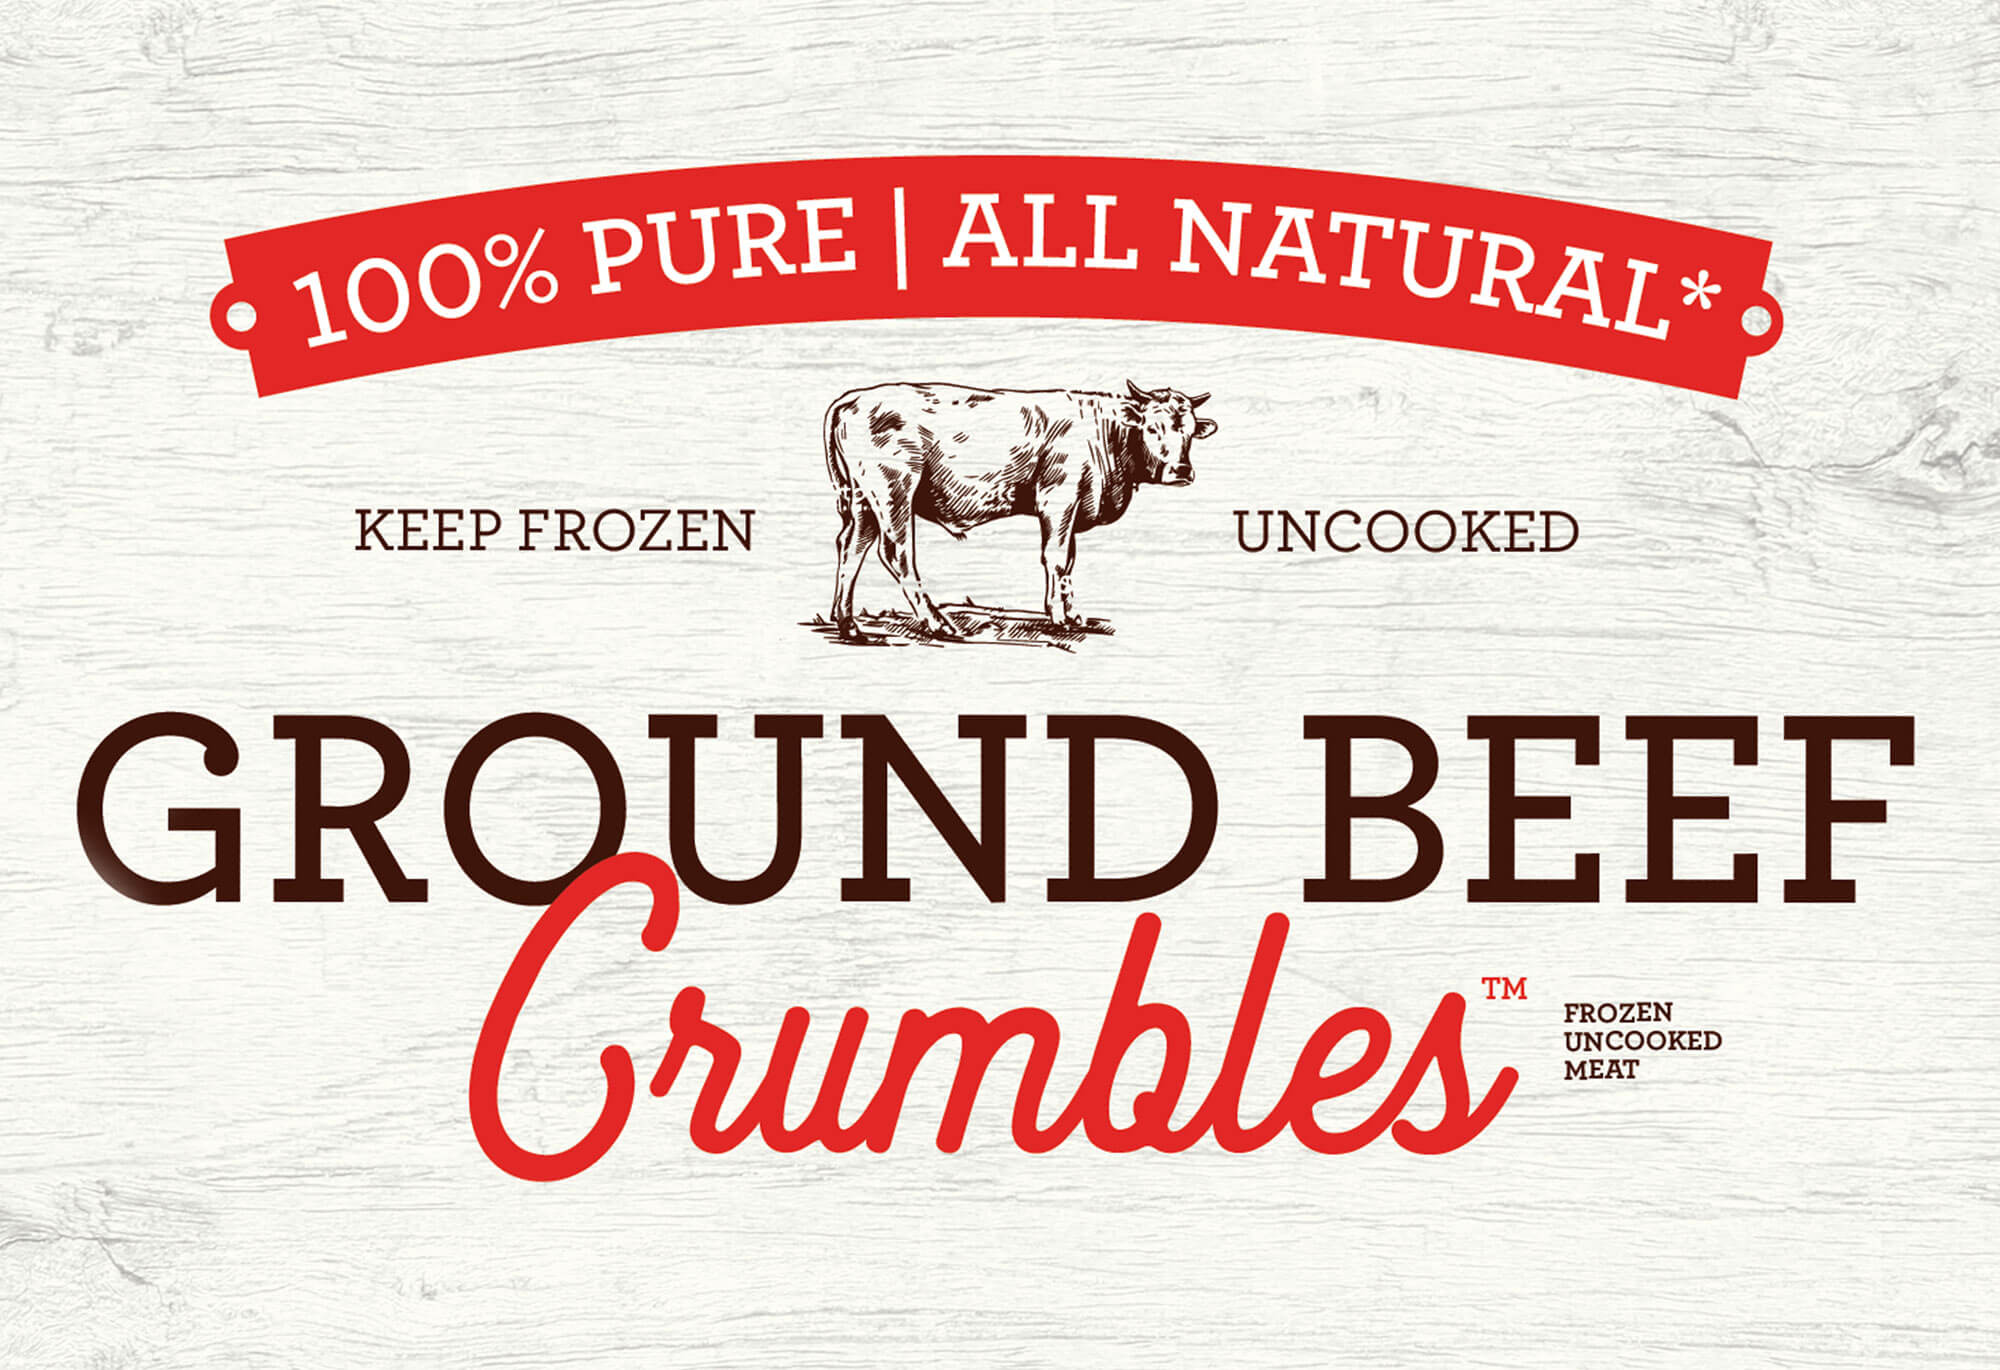 Natural textures and soft typography are strongly featured on this frozen food packaging